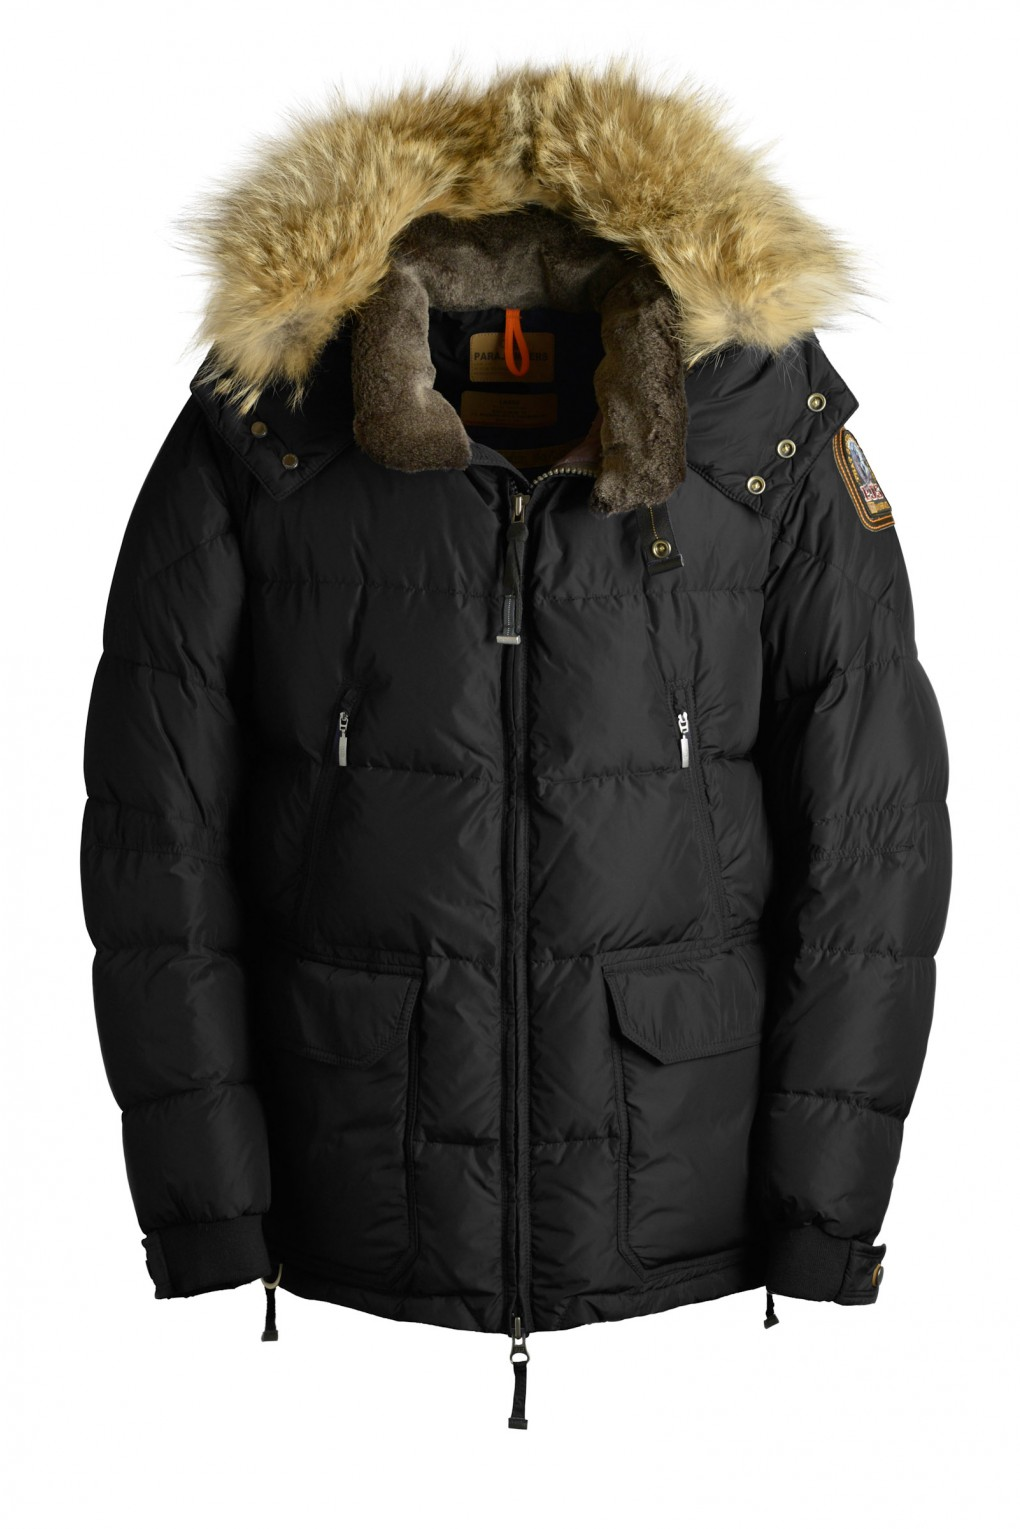 parajumpers MAINE man outerwear Black